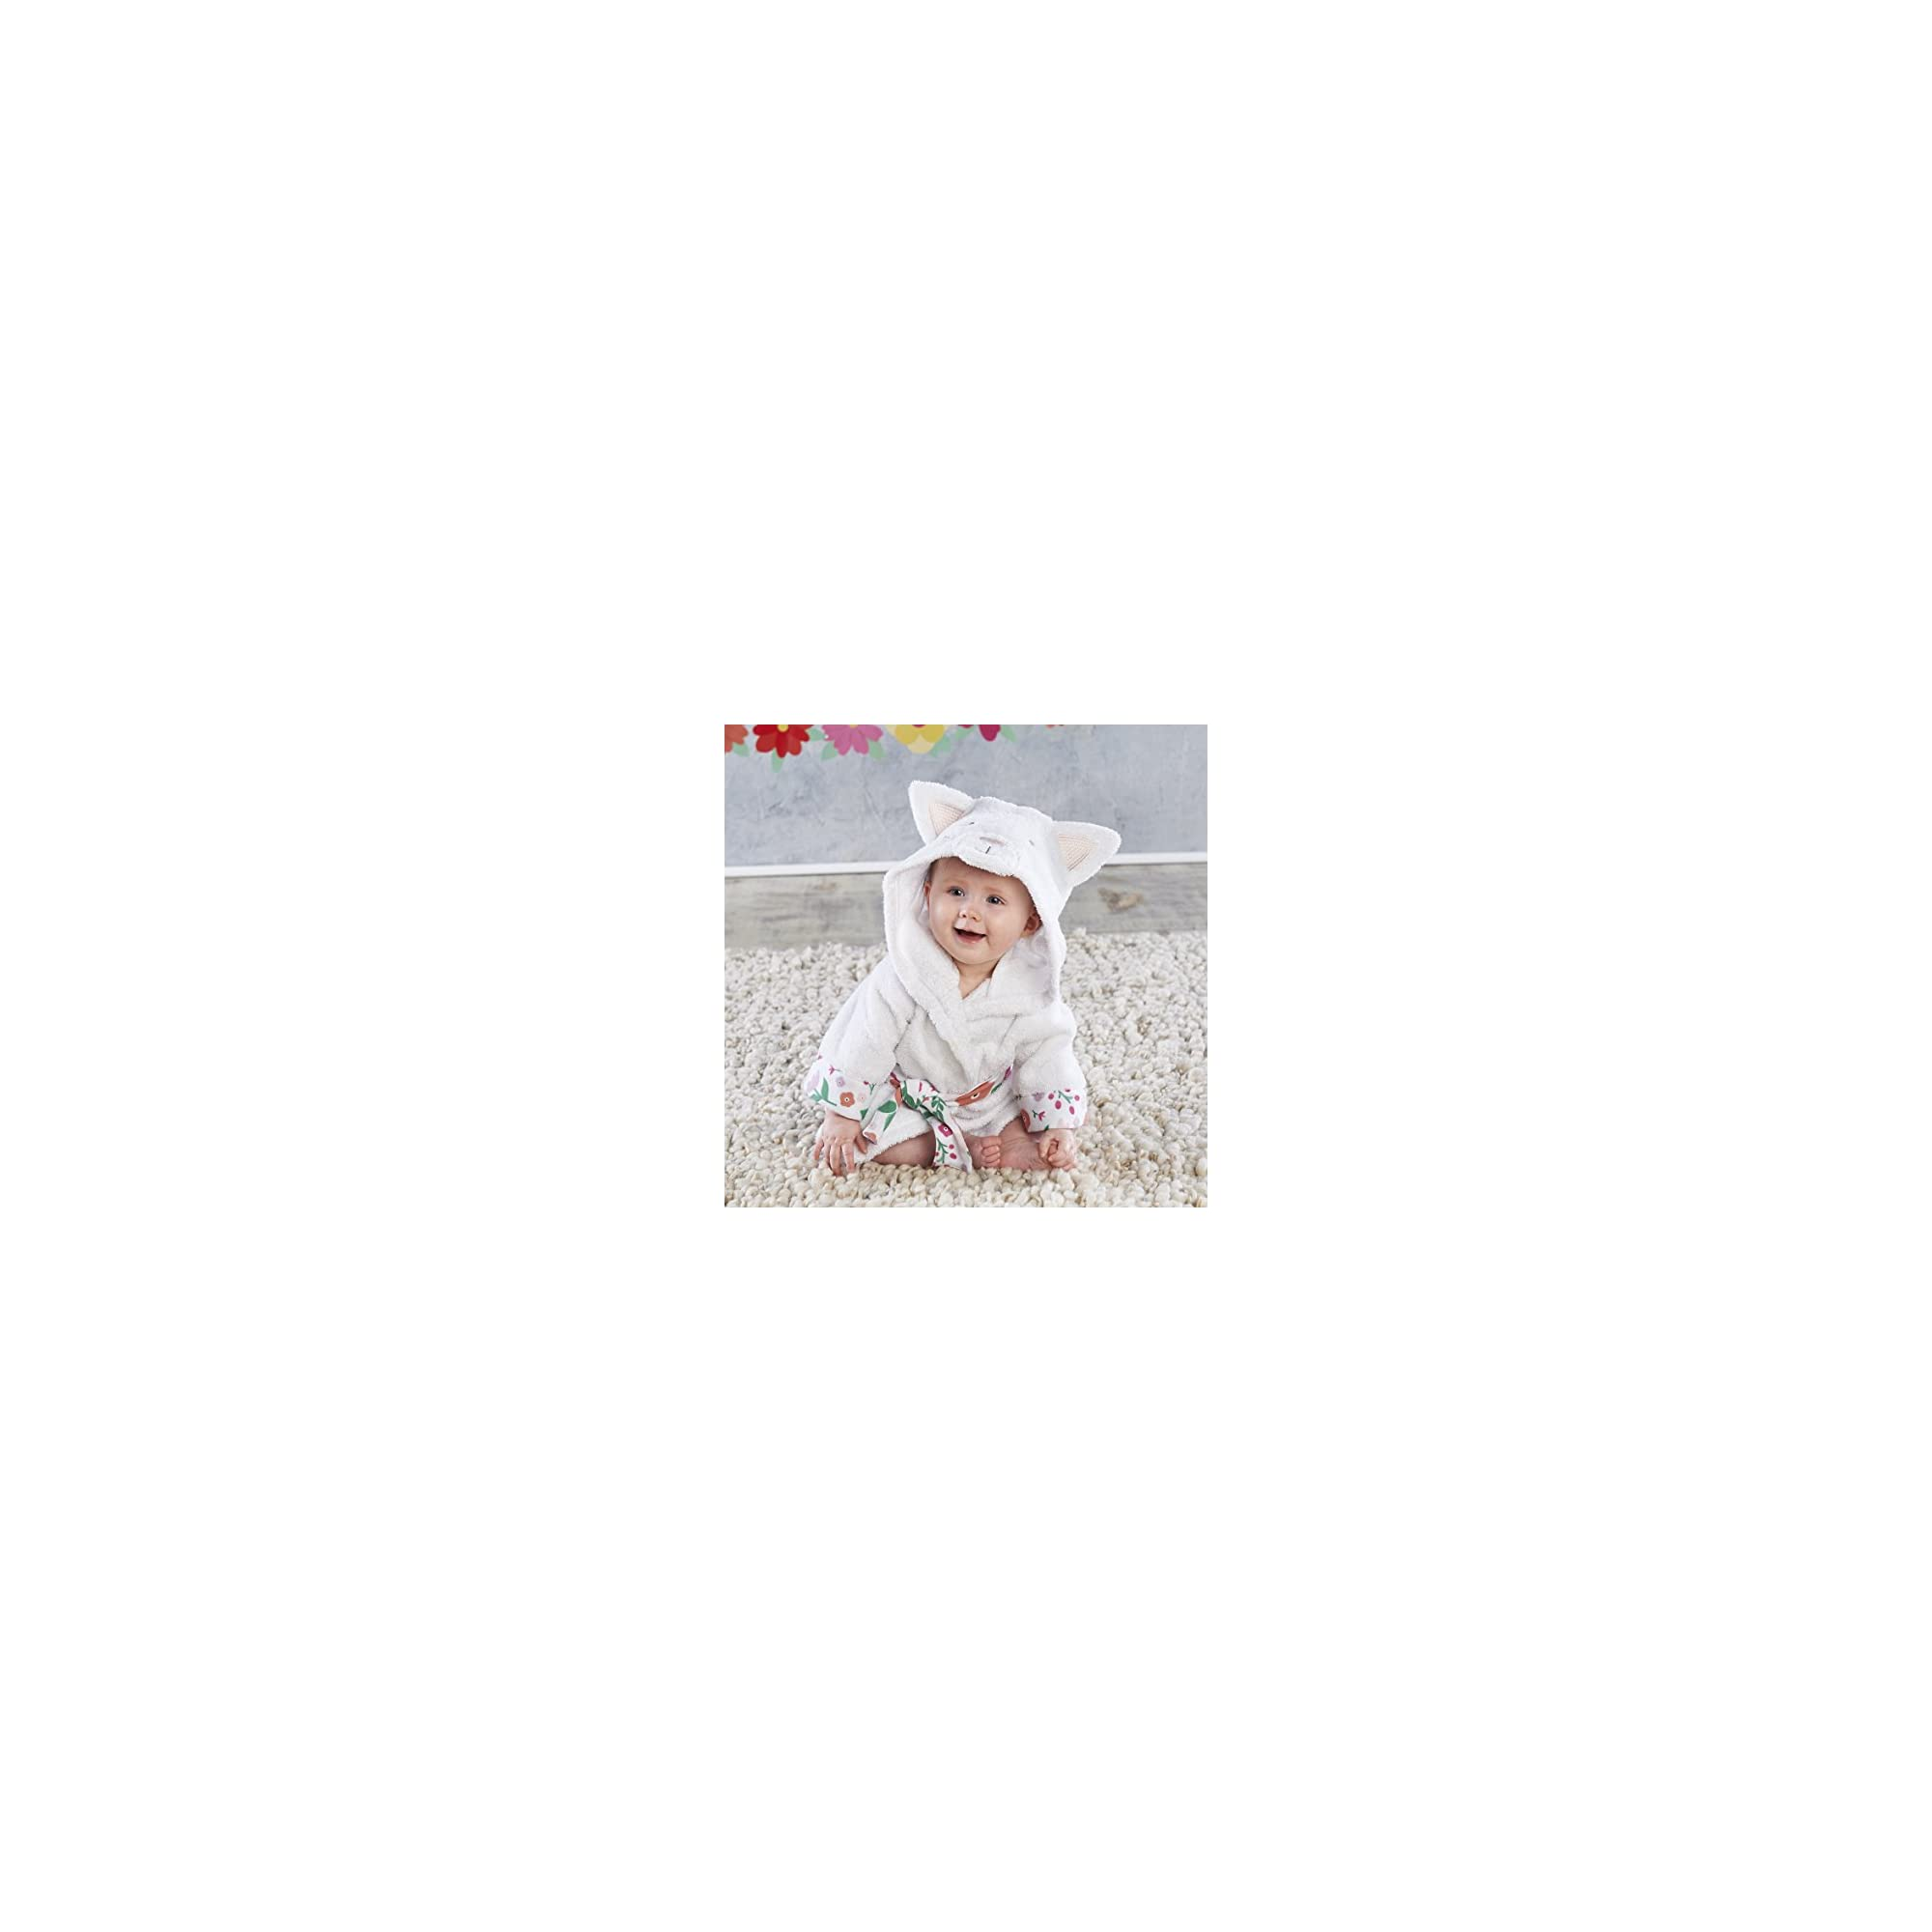 Baby Aspen, Hooded Cat Robe with Ears, Baby Bath Towel, Terry Cloth, White and Floral